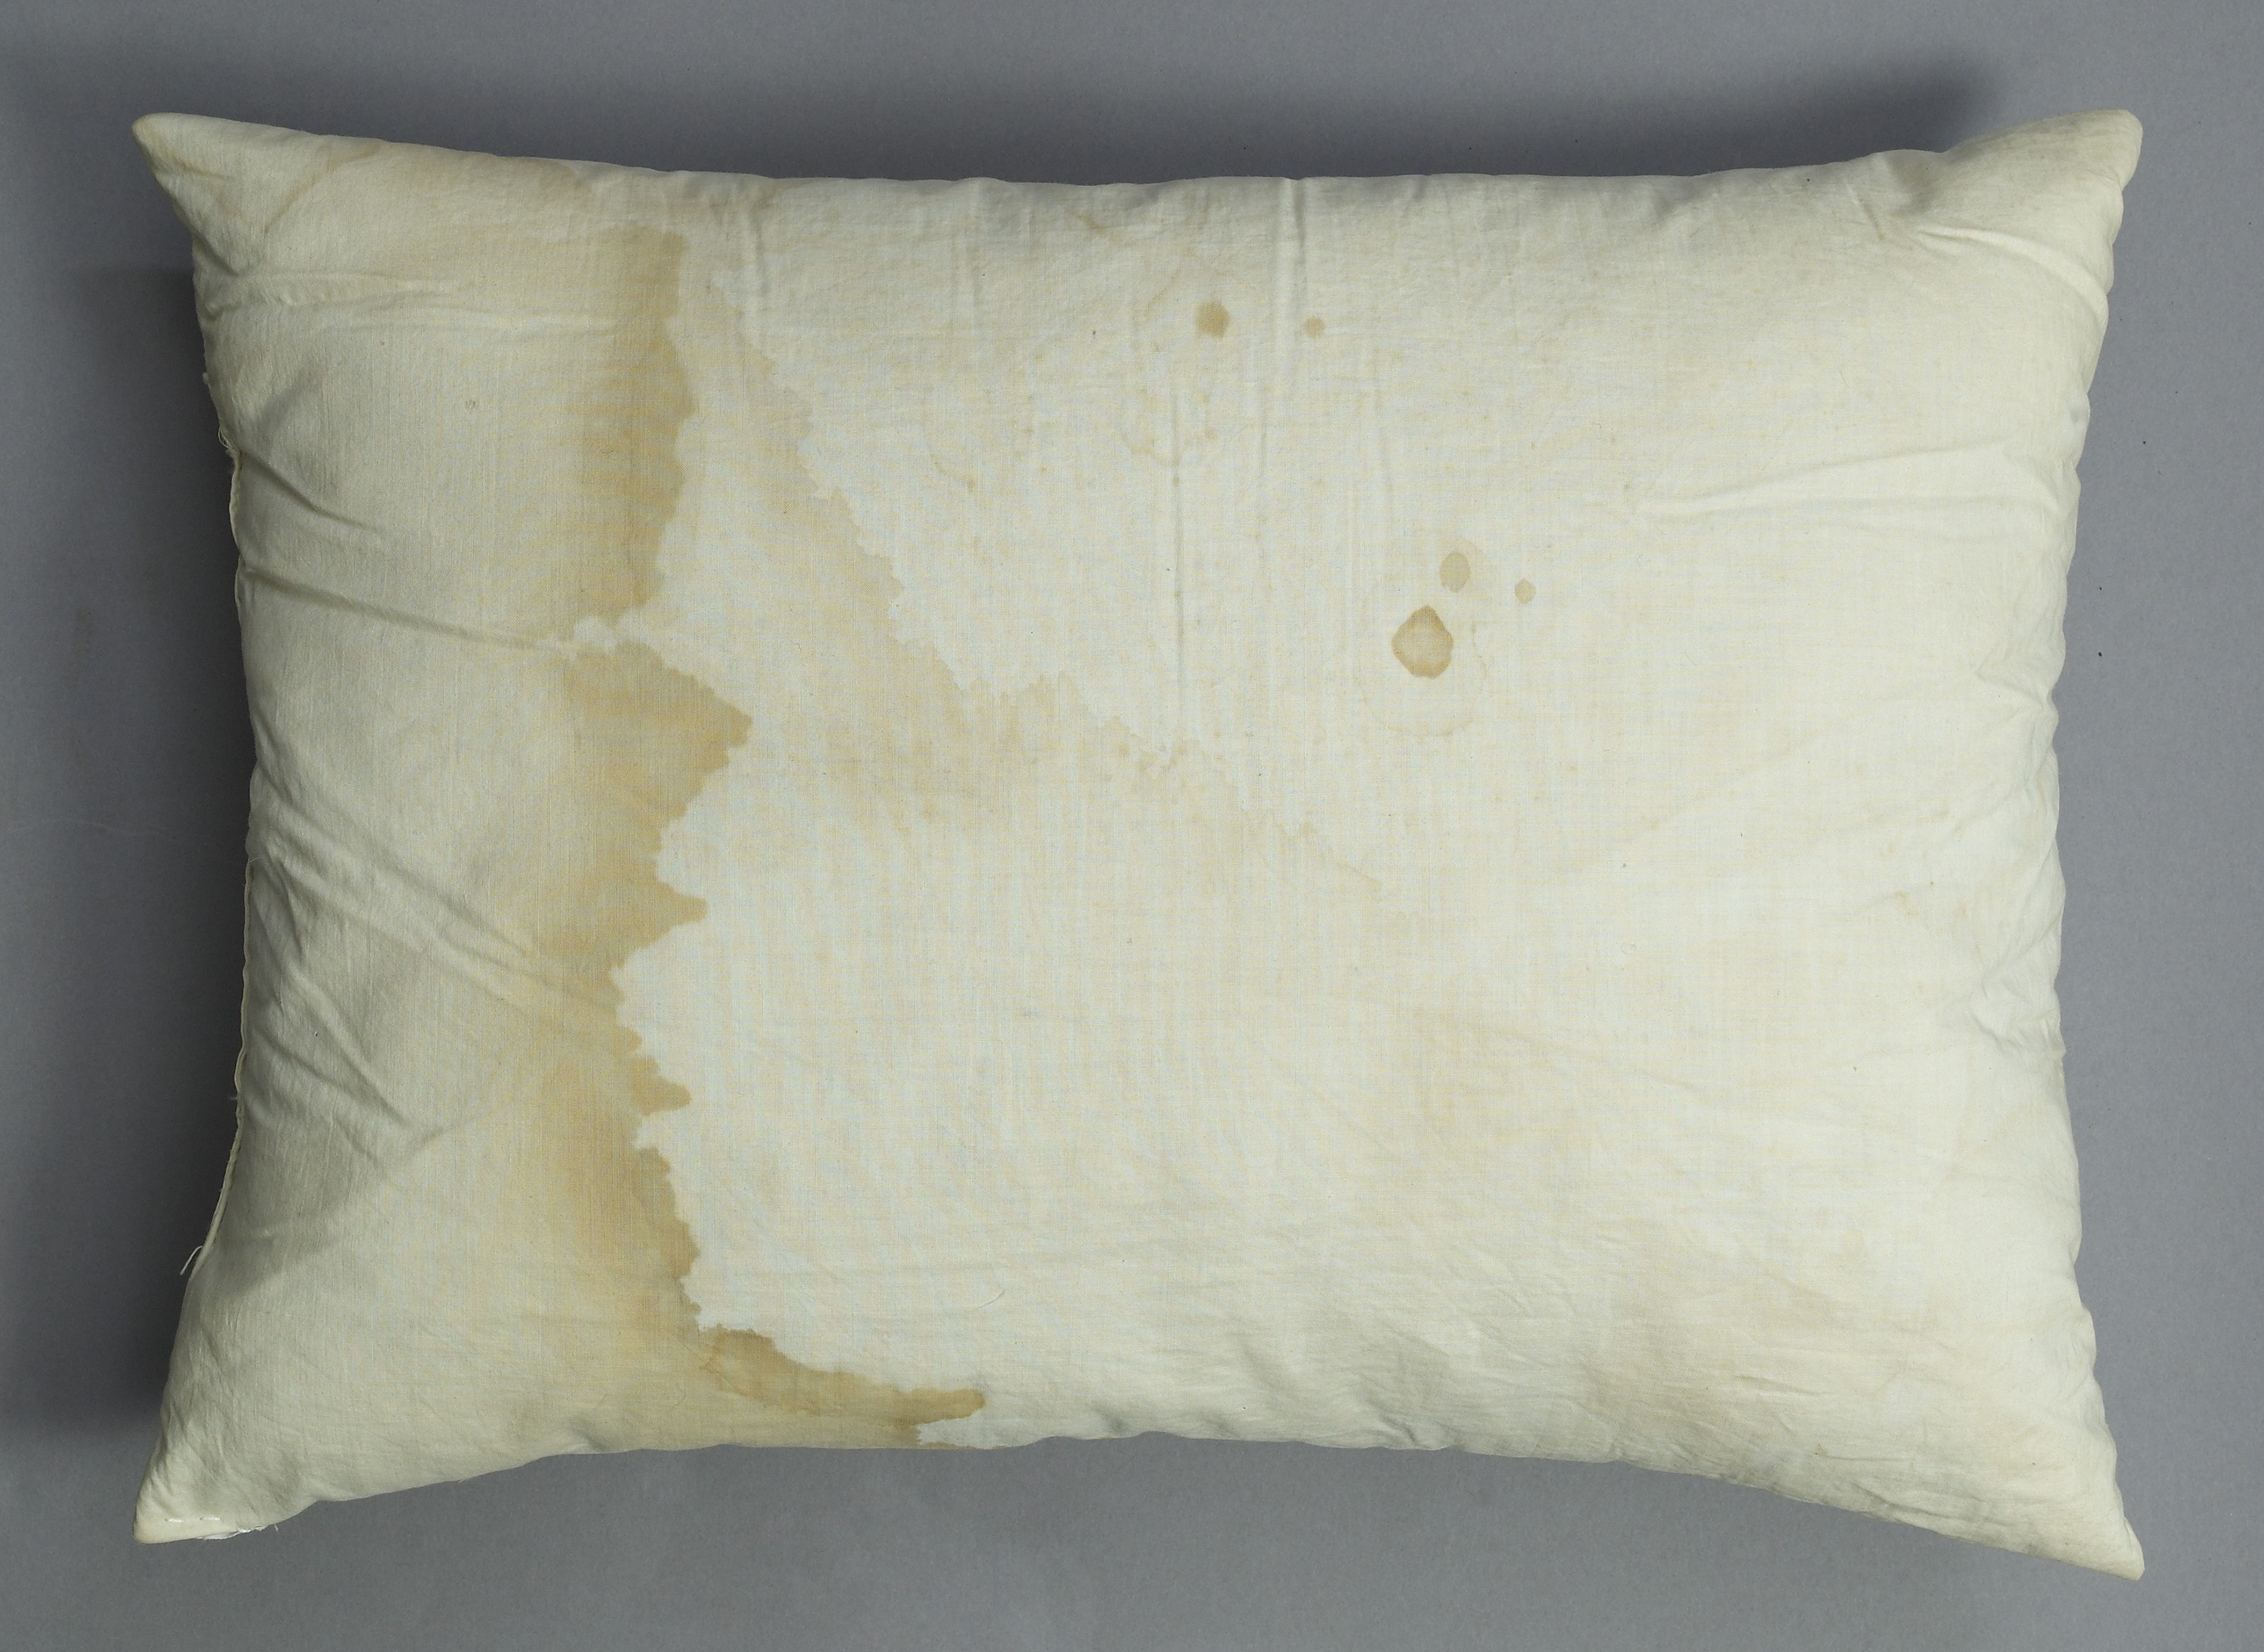 Lincoln S Pillow Fords Theatre